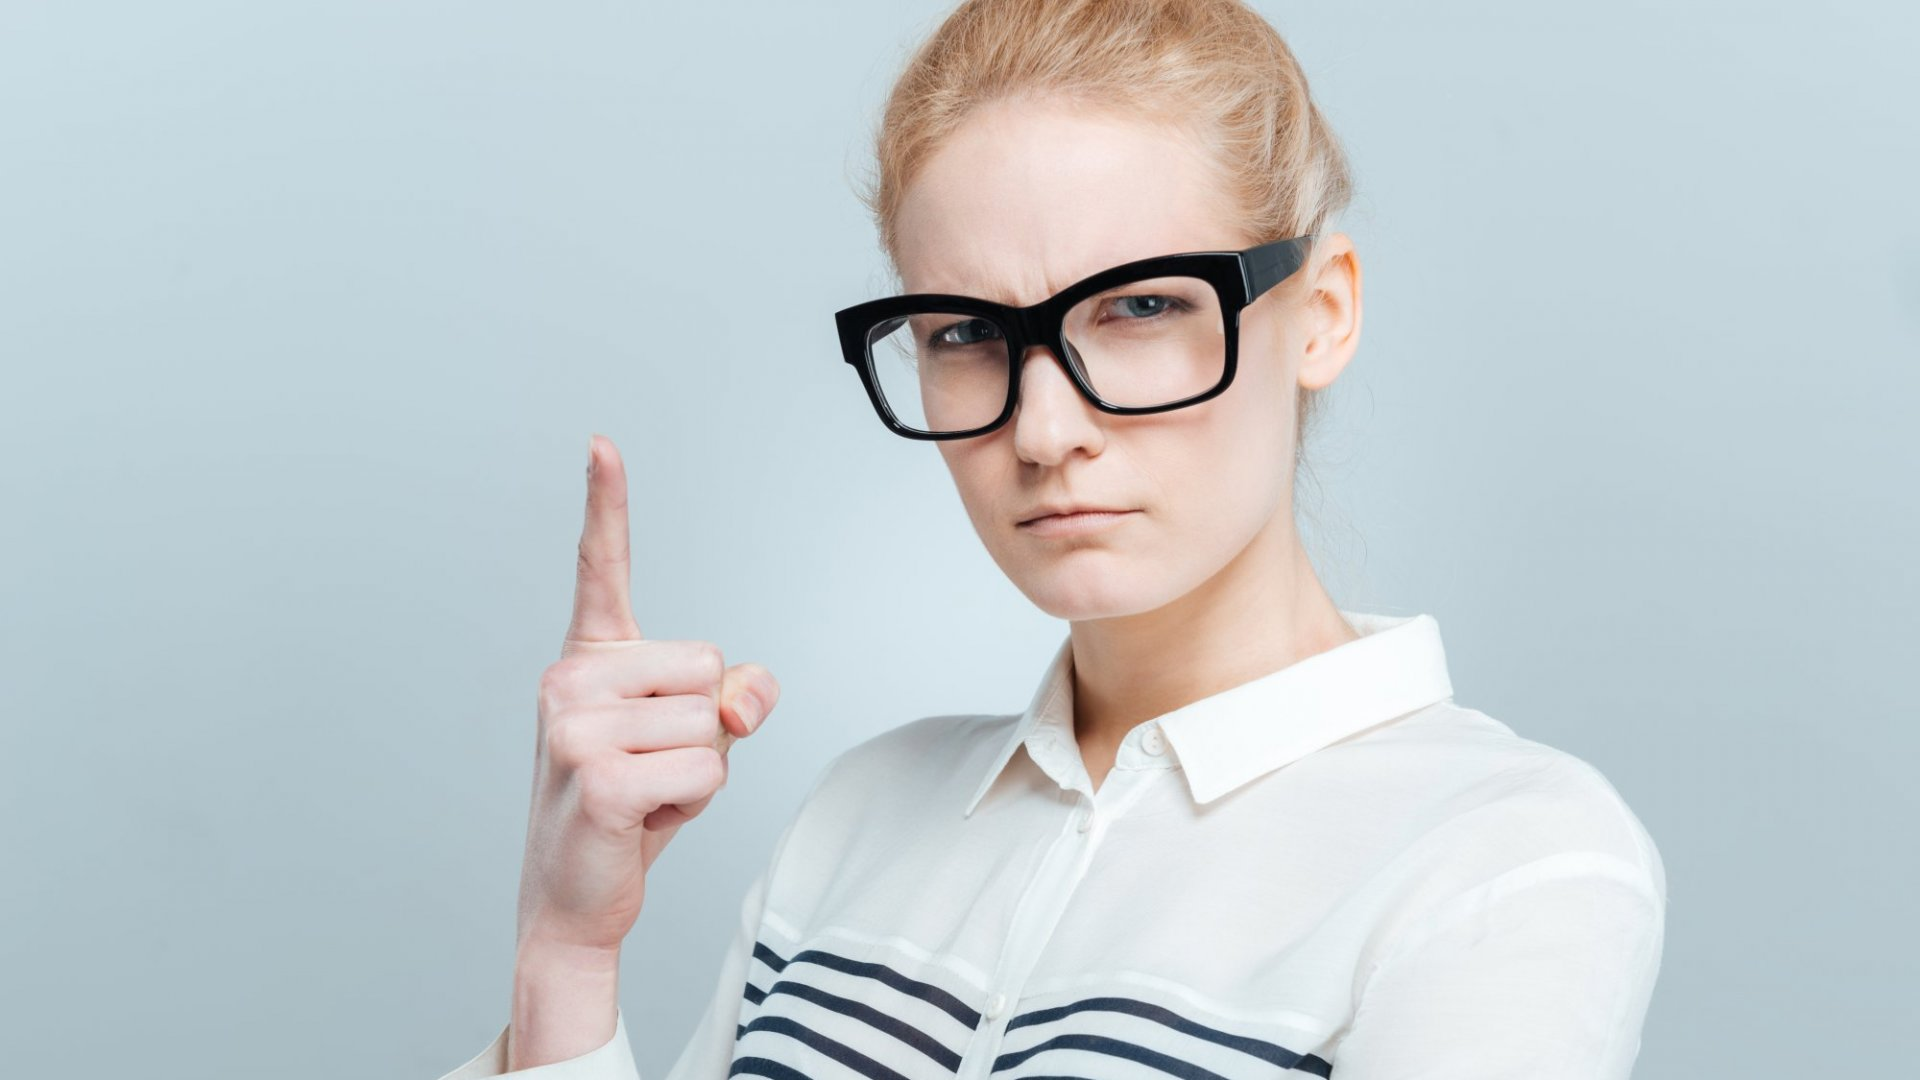 6 Really Dumb Moves: What Managers Should Never Do to Millennial Employees